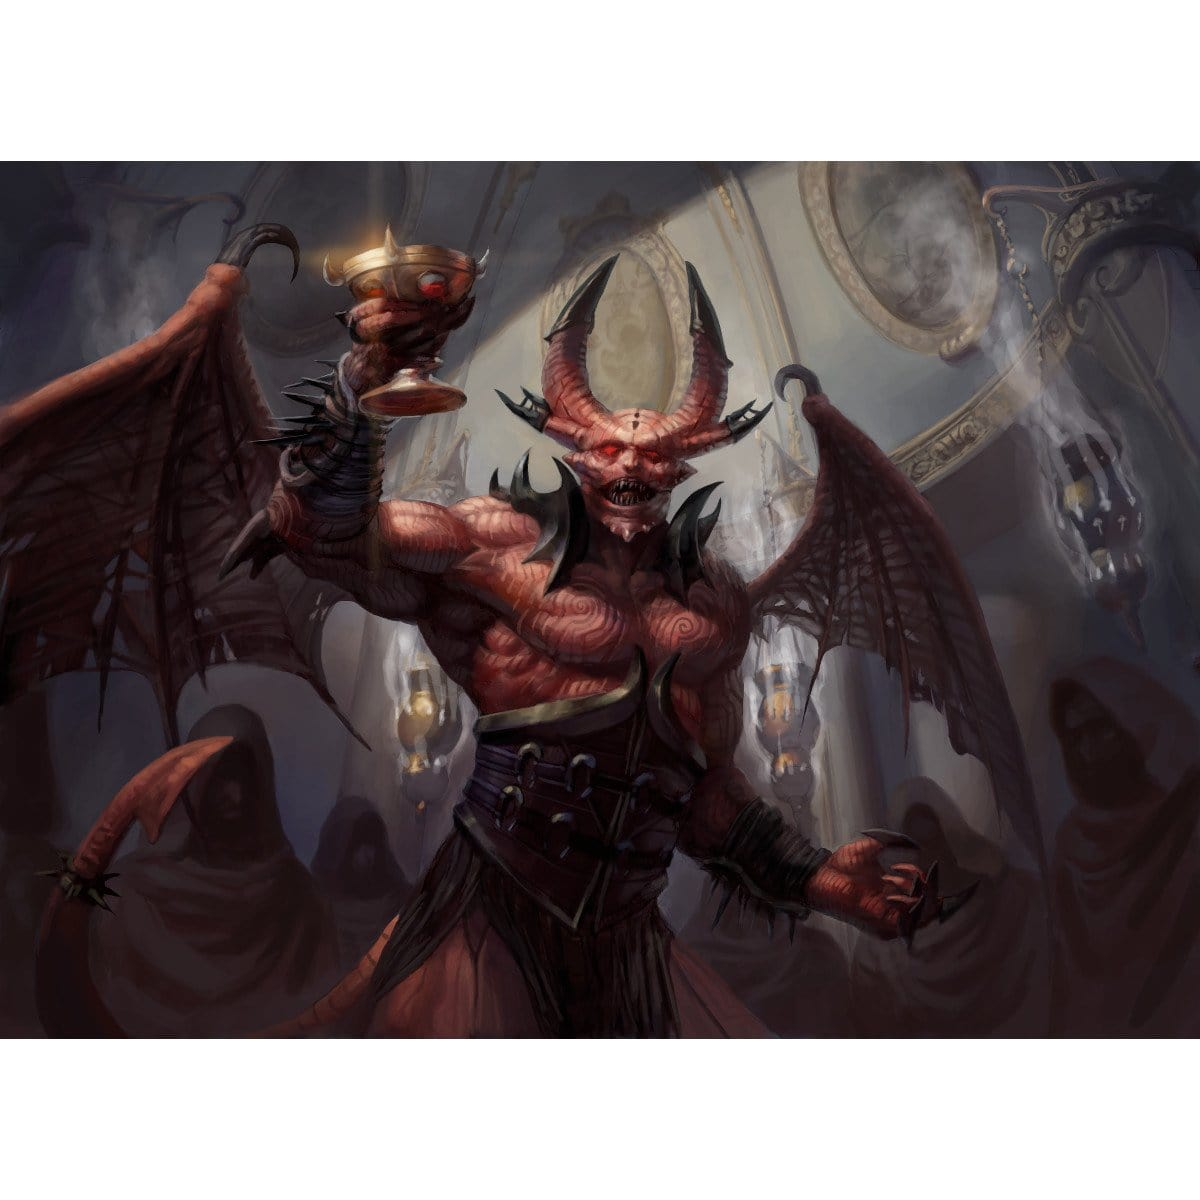 Bloodgift Demon Print - Print - Original Magic Art - Accessories for Magic the Gathering and other card games